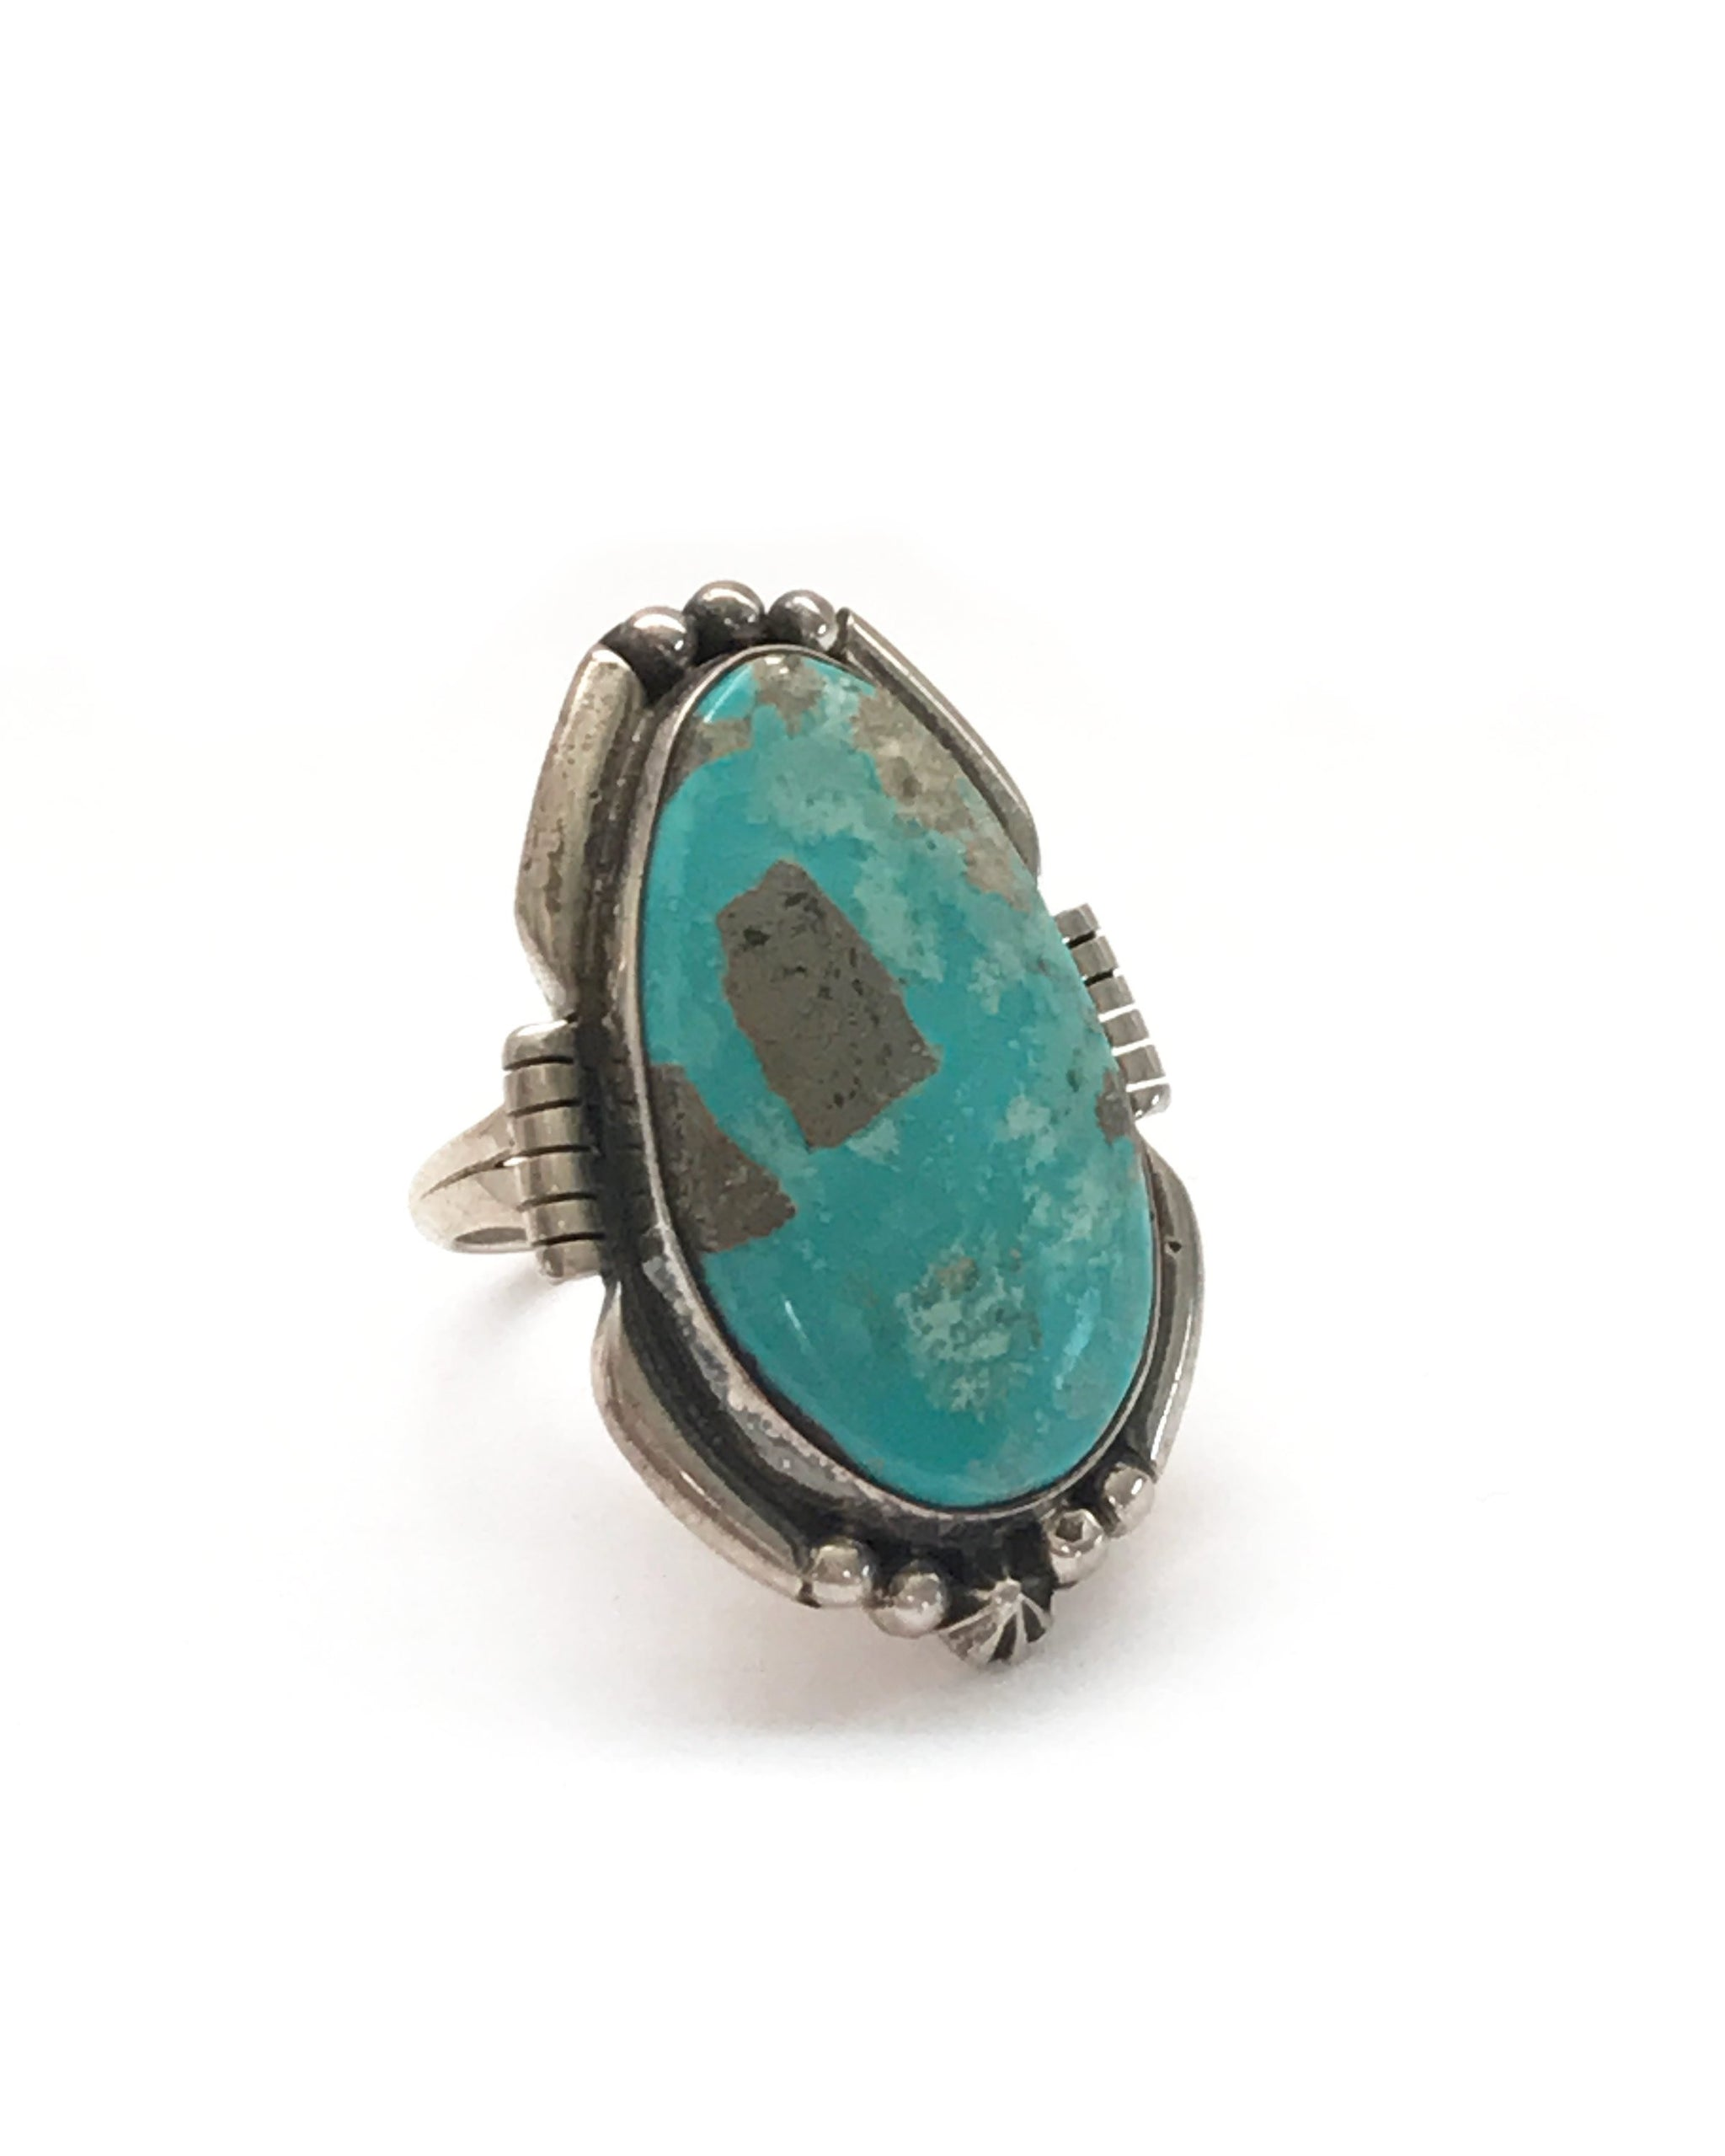 VINTAGE CARICO LAKE TURQUOISE RING - TURQUOISE + TOBACCO